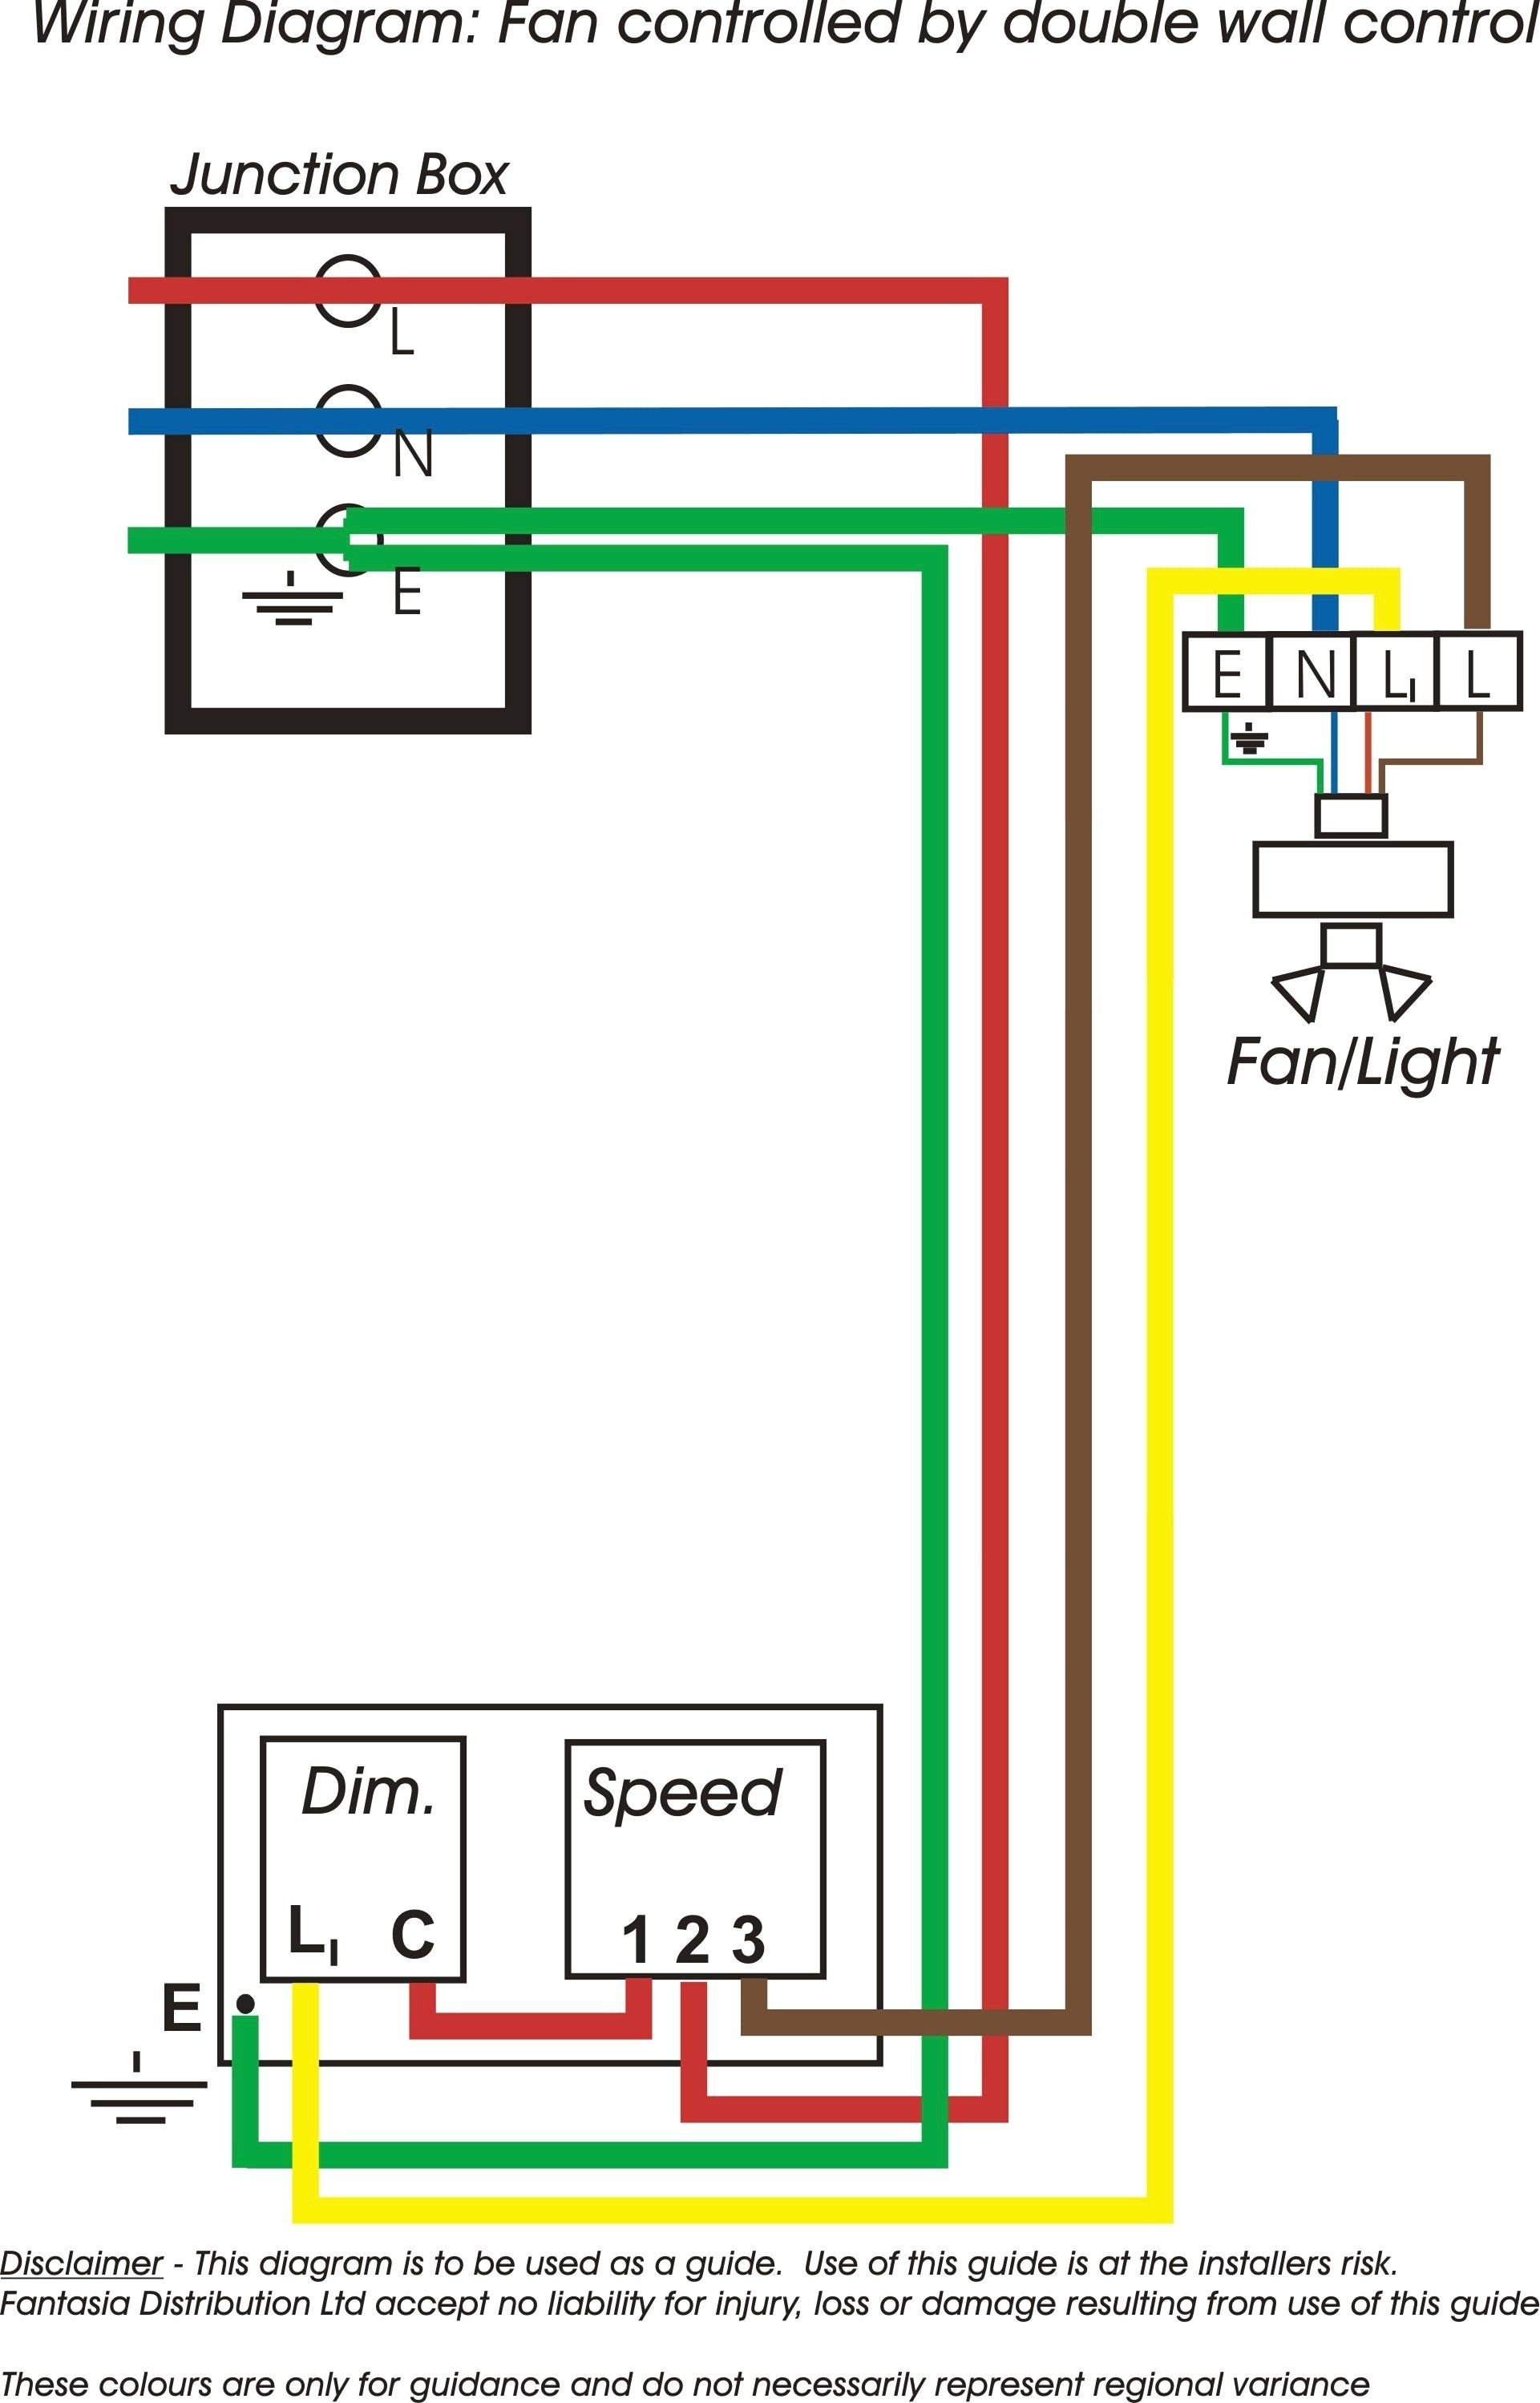 42+ Extractor fan wiring diagram info